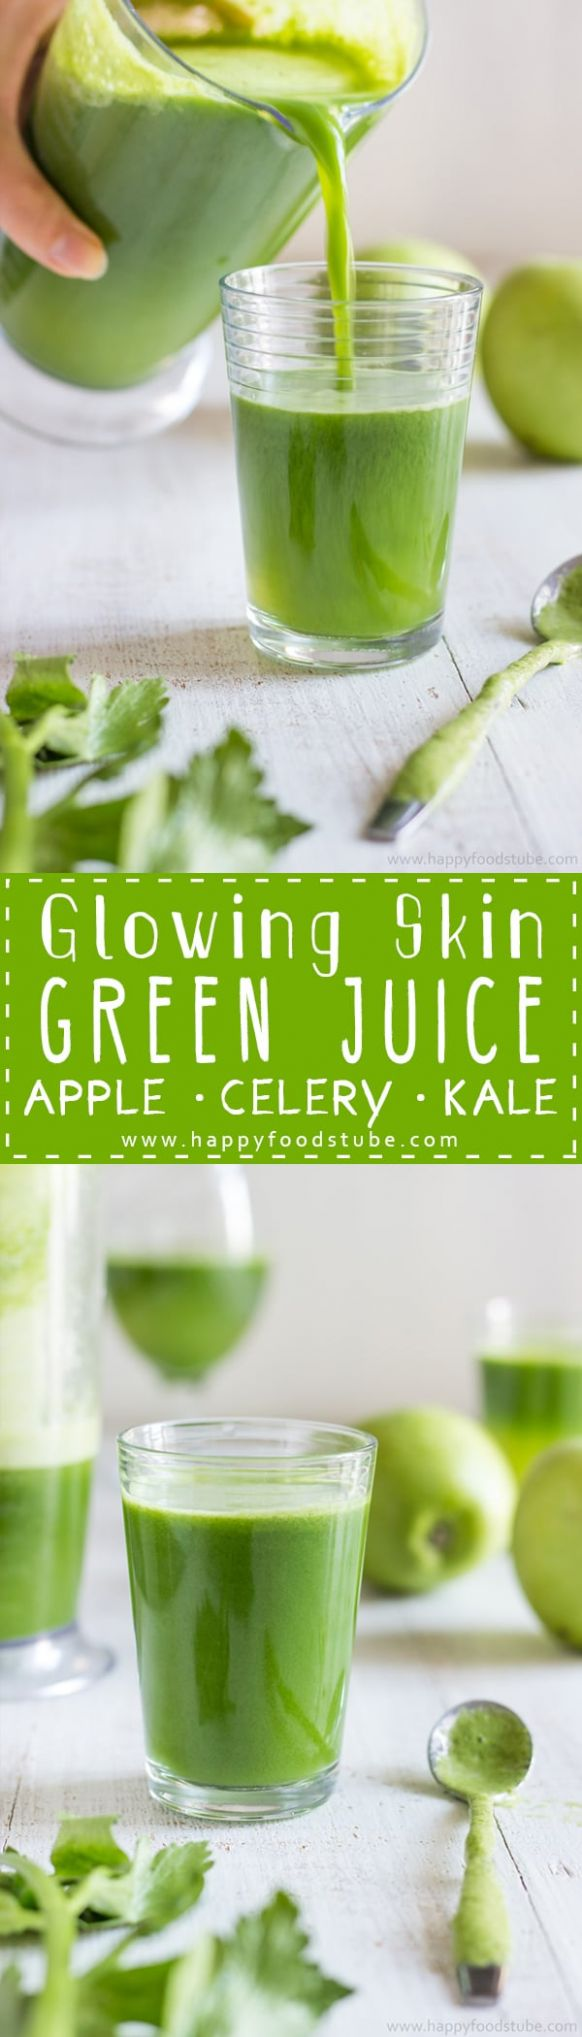 Glowing Skin Green Juice - Simple Juicer Recipes